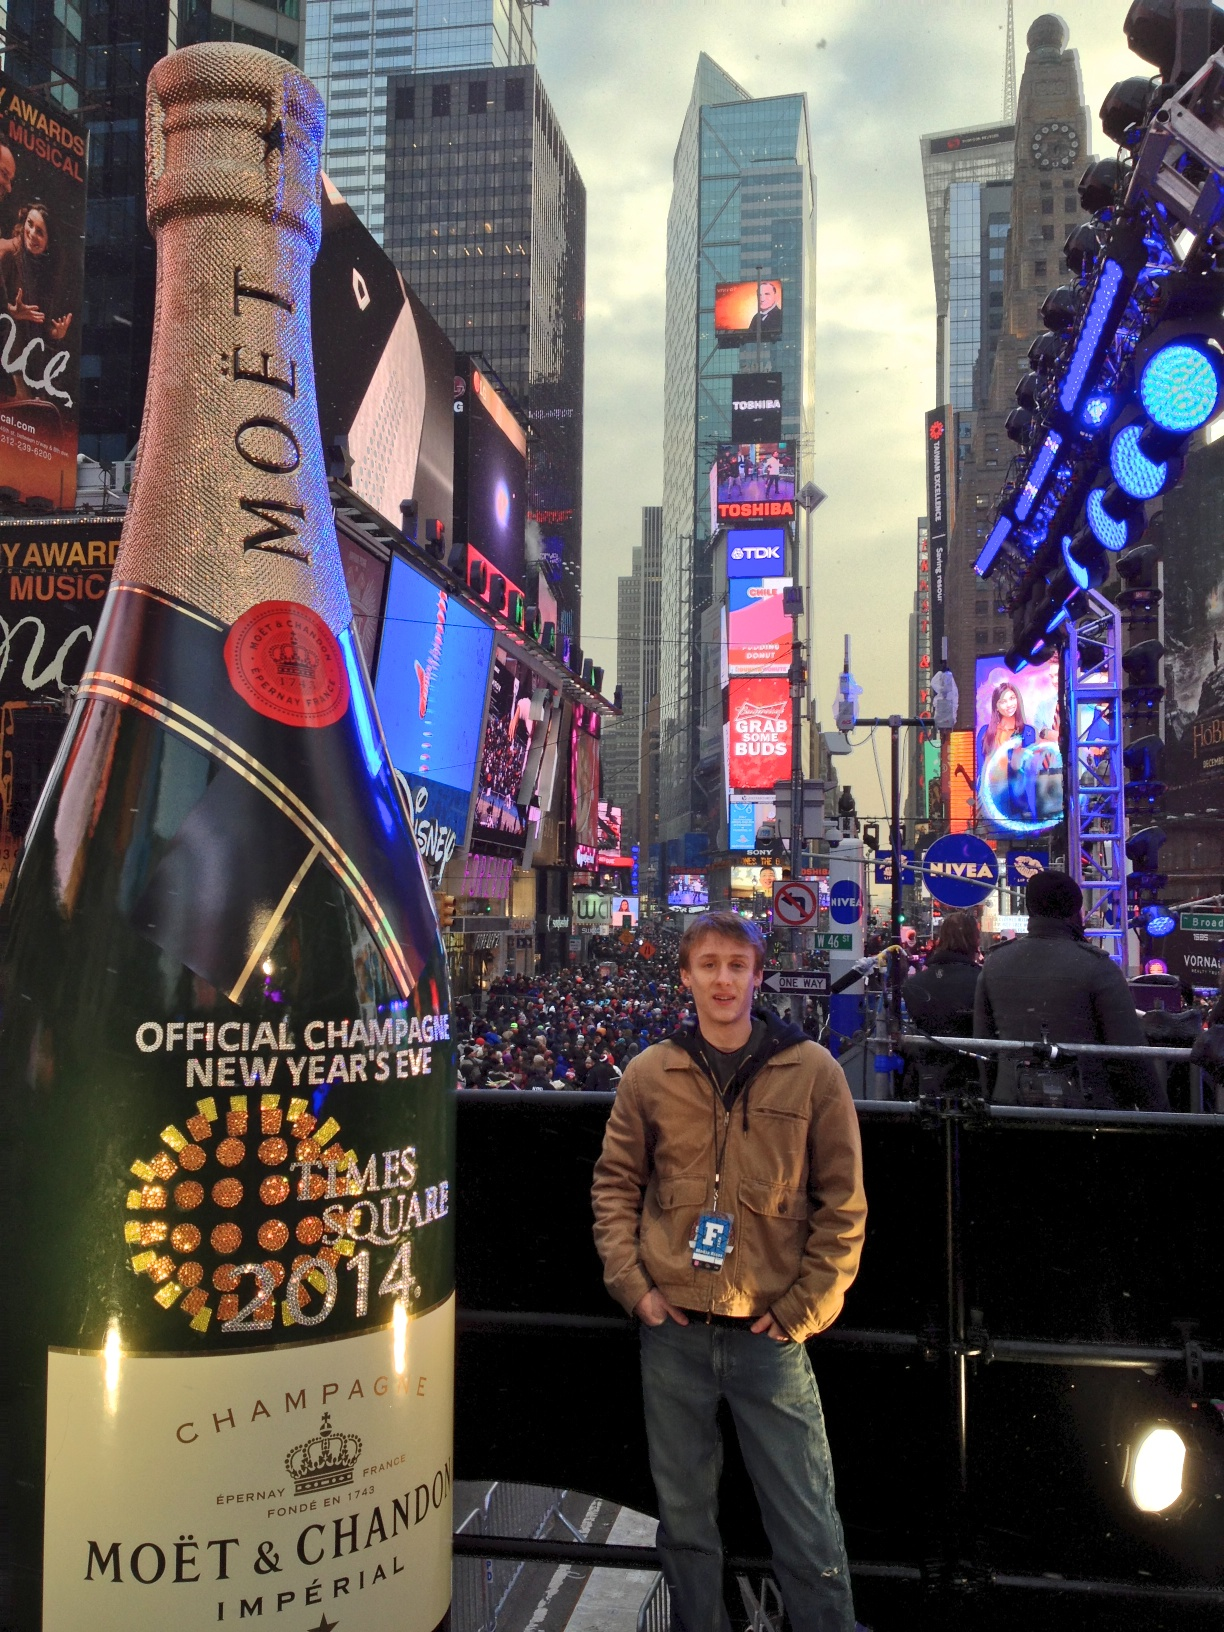 New Year's Eve Ball Drop in Times Sqquare.